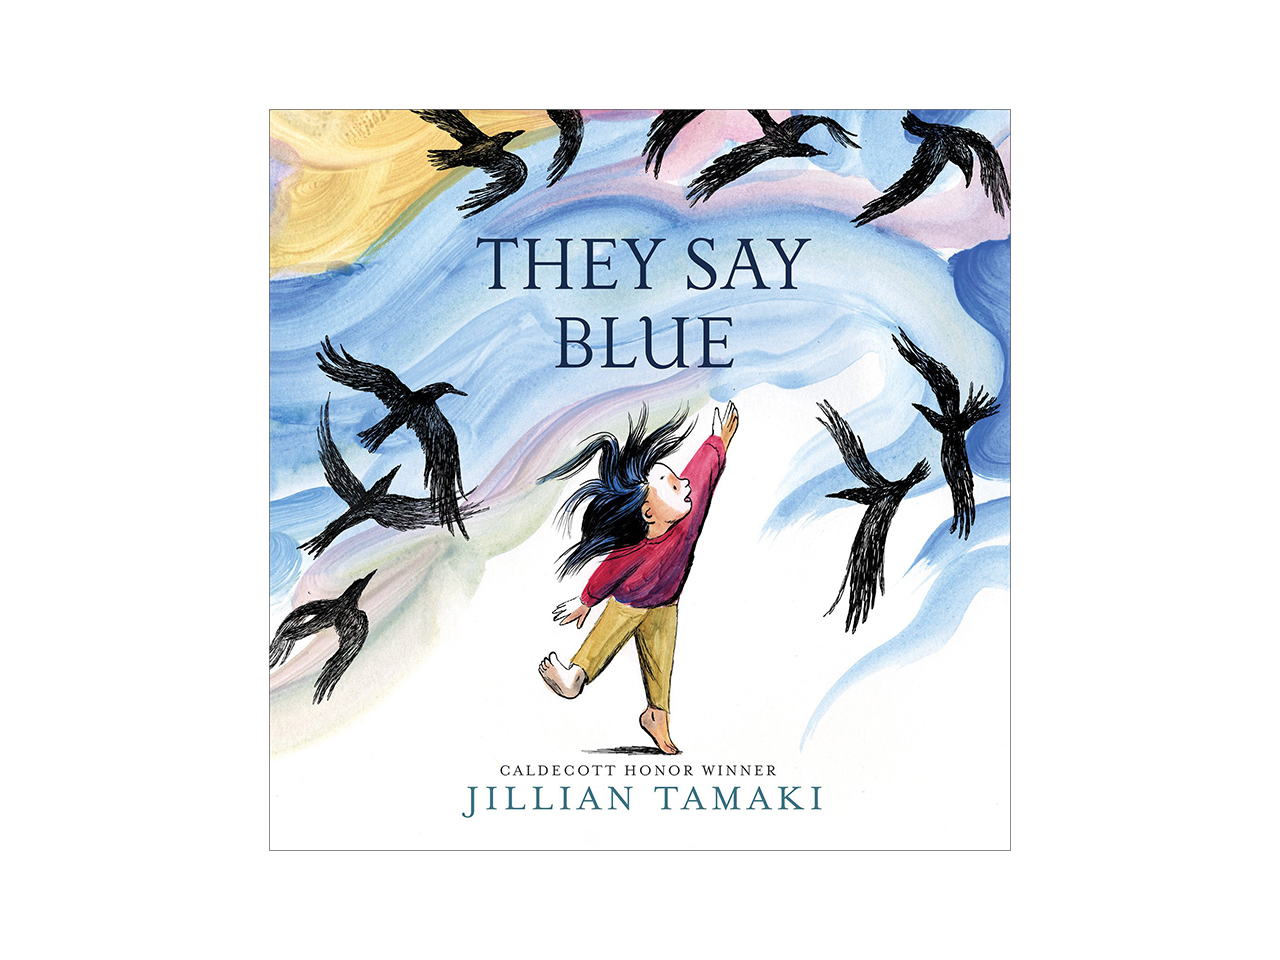 Cover art for TheySay Blue showing an illustrated girl playing in the wind with a bunch of crows